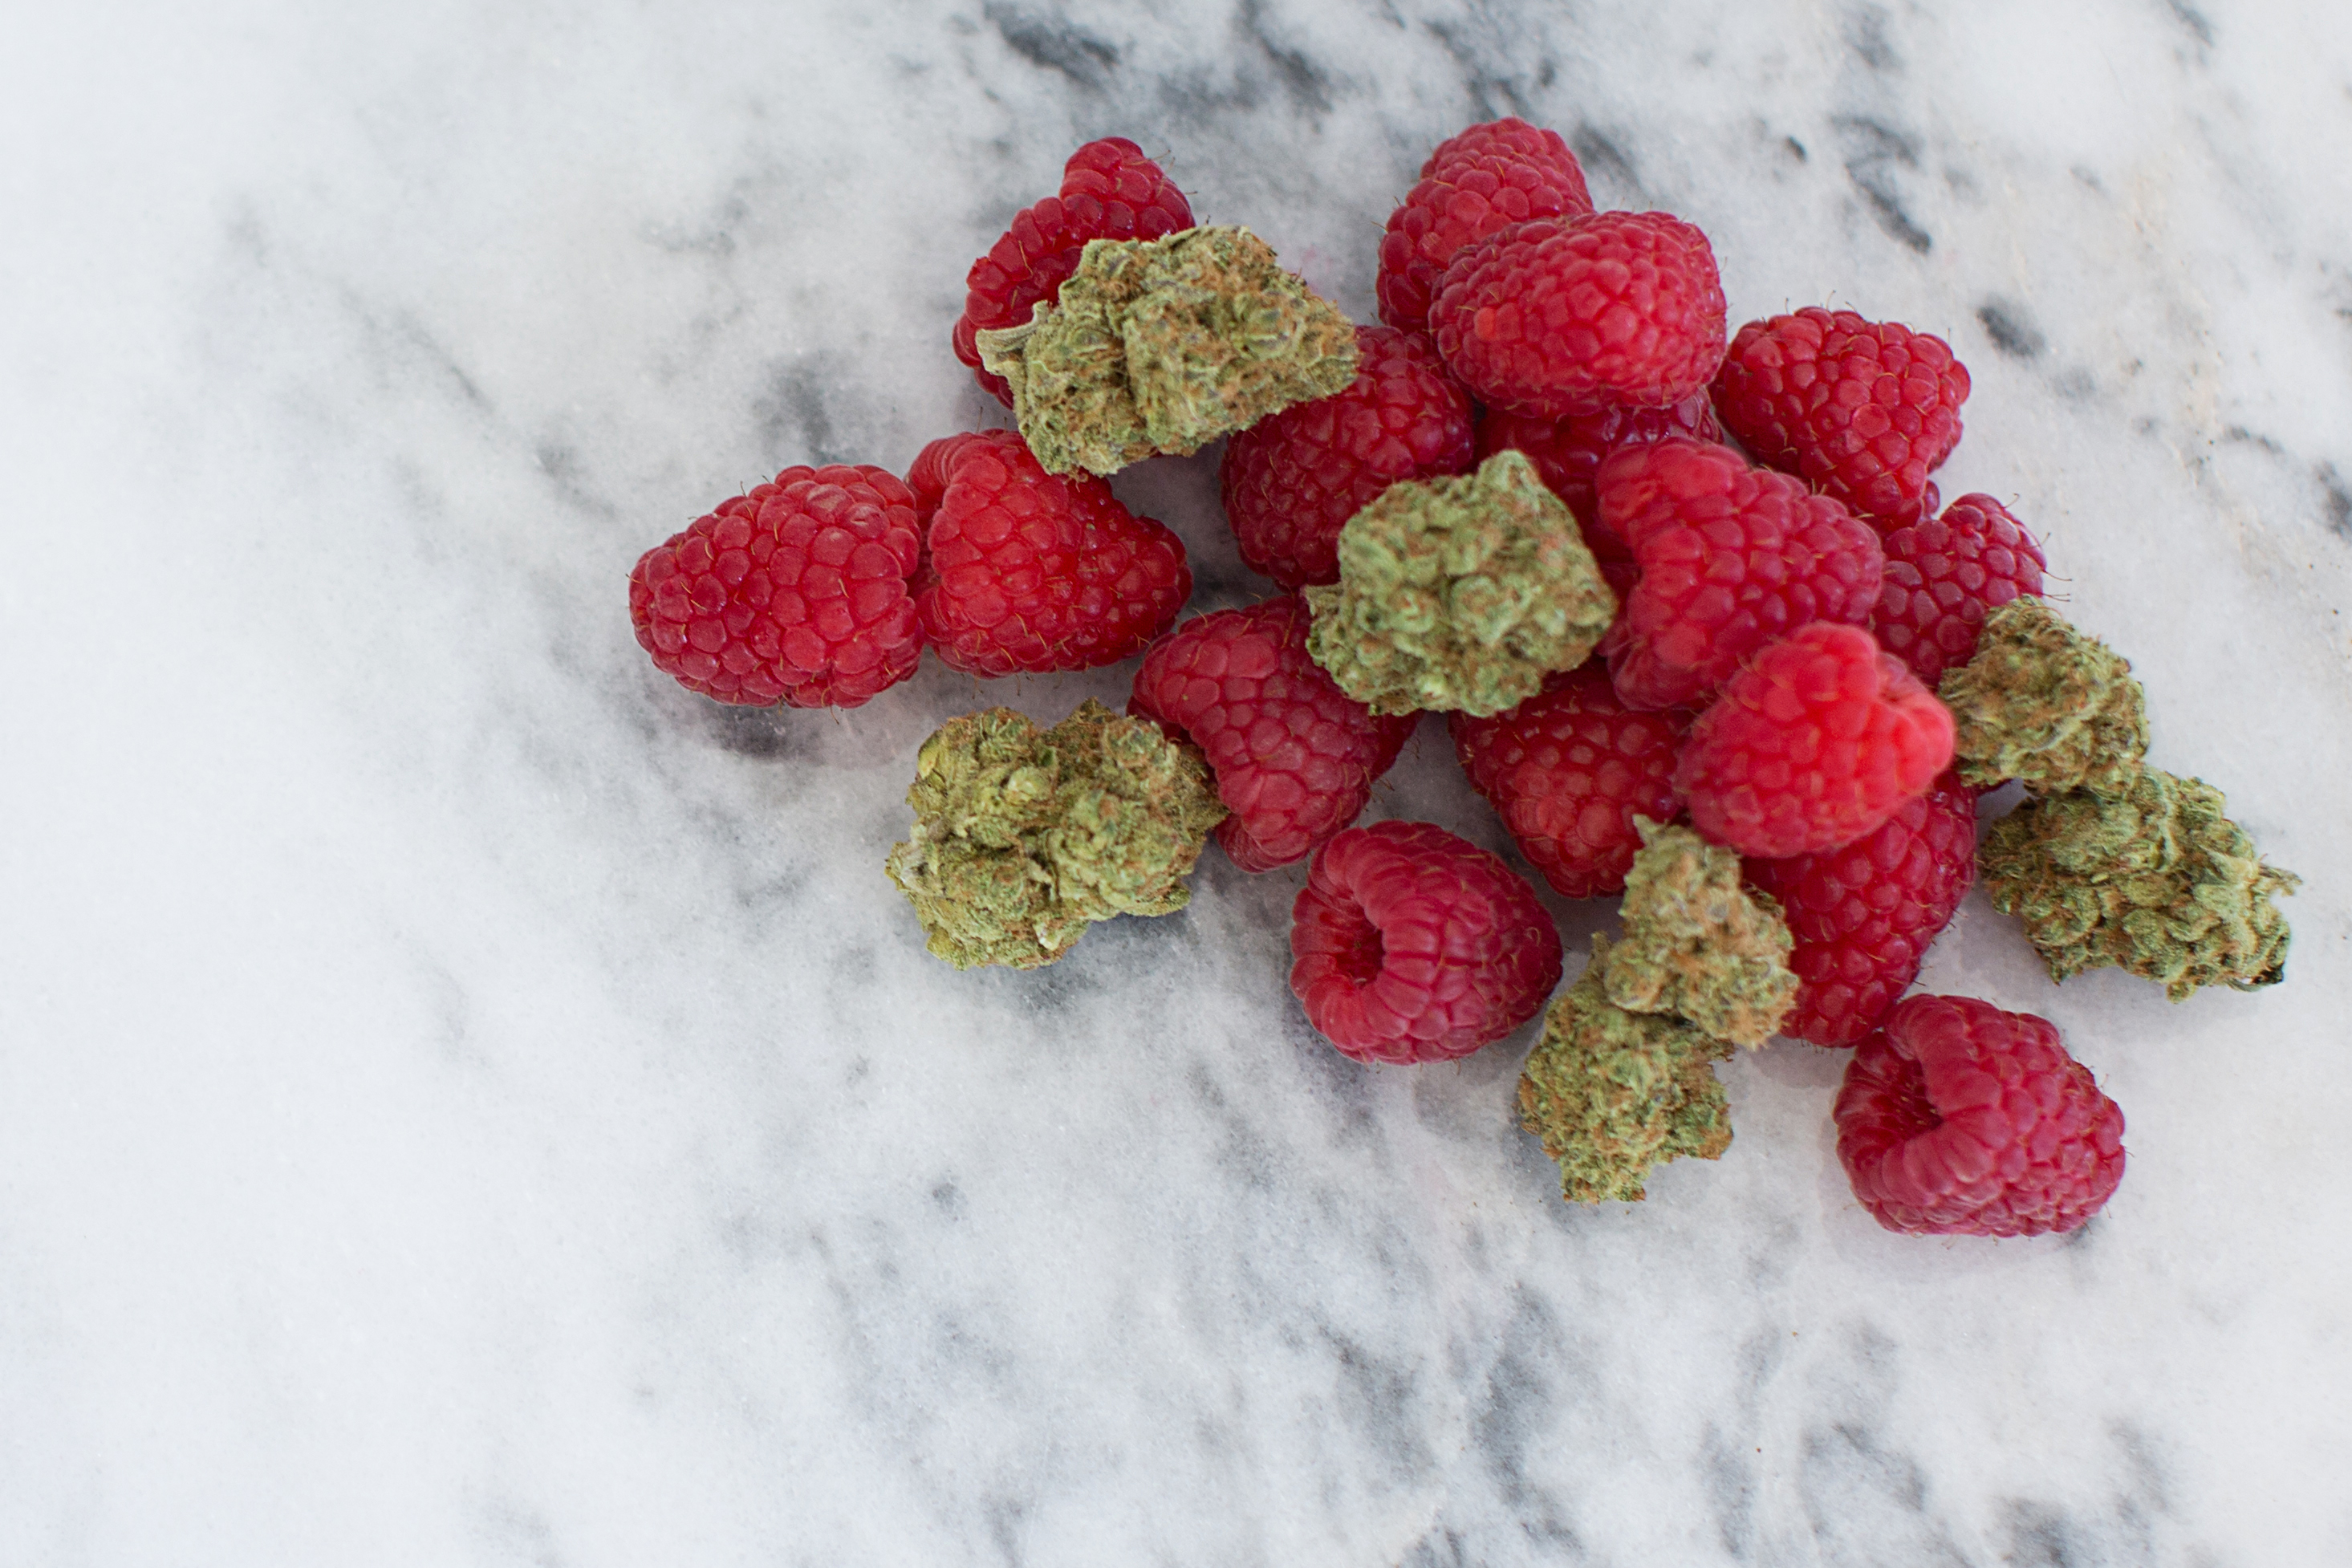 More raspberries than product